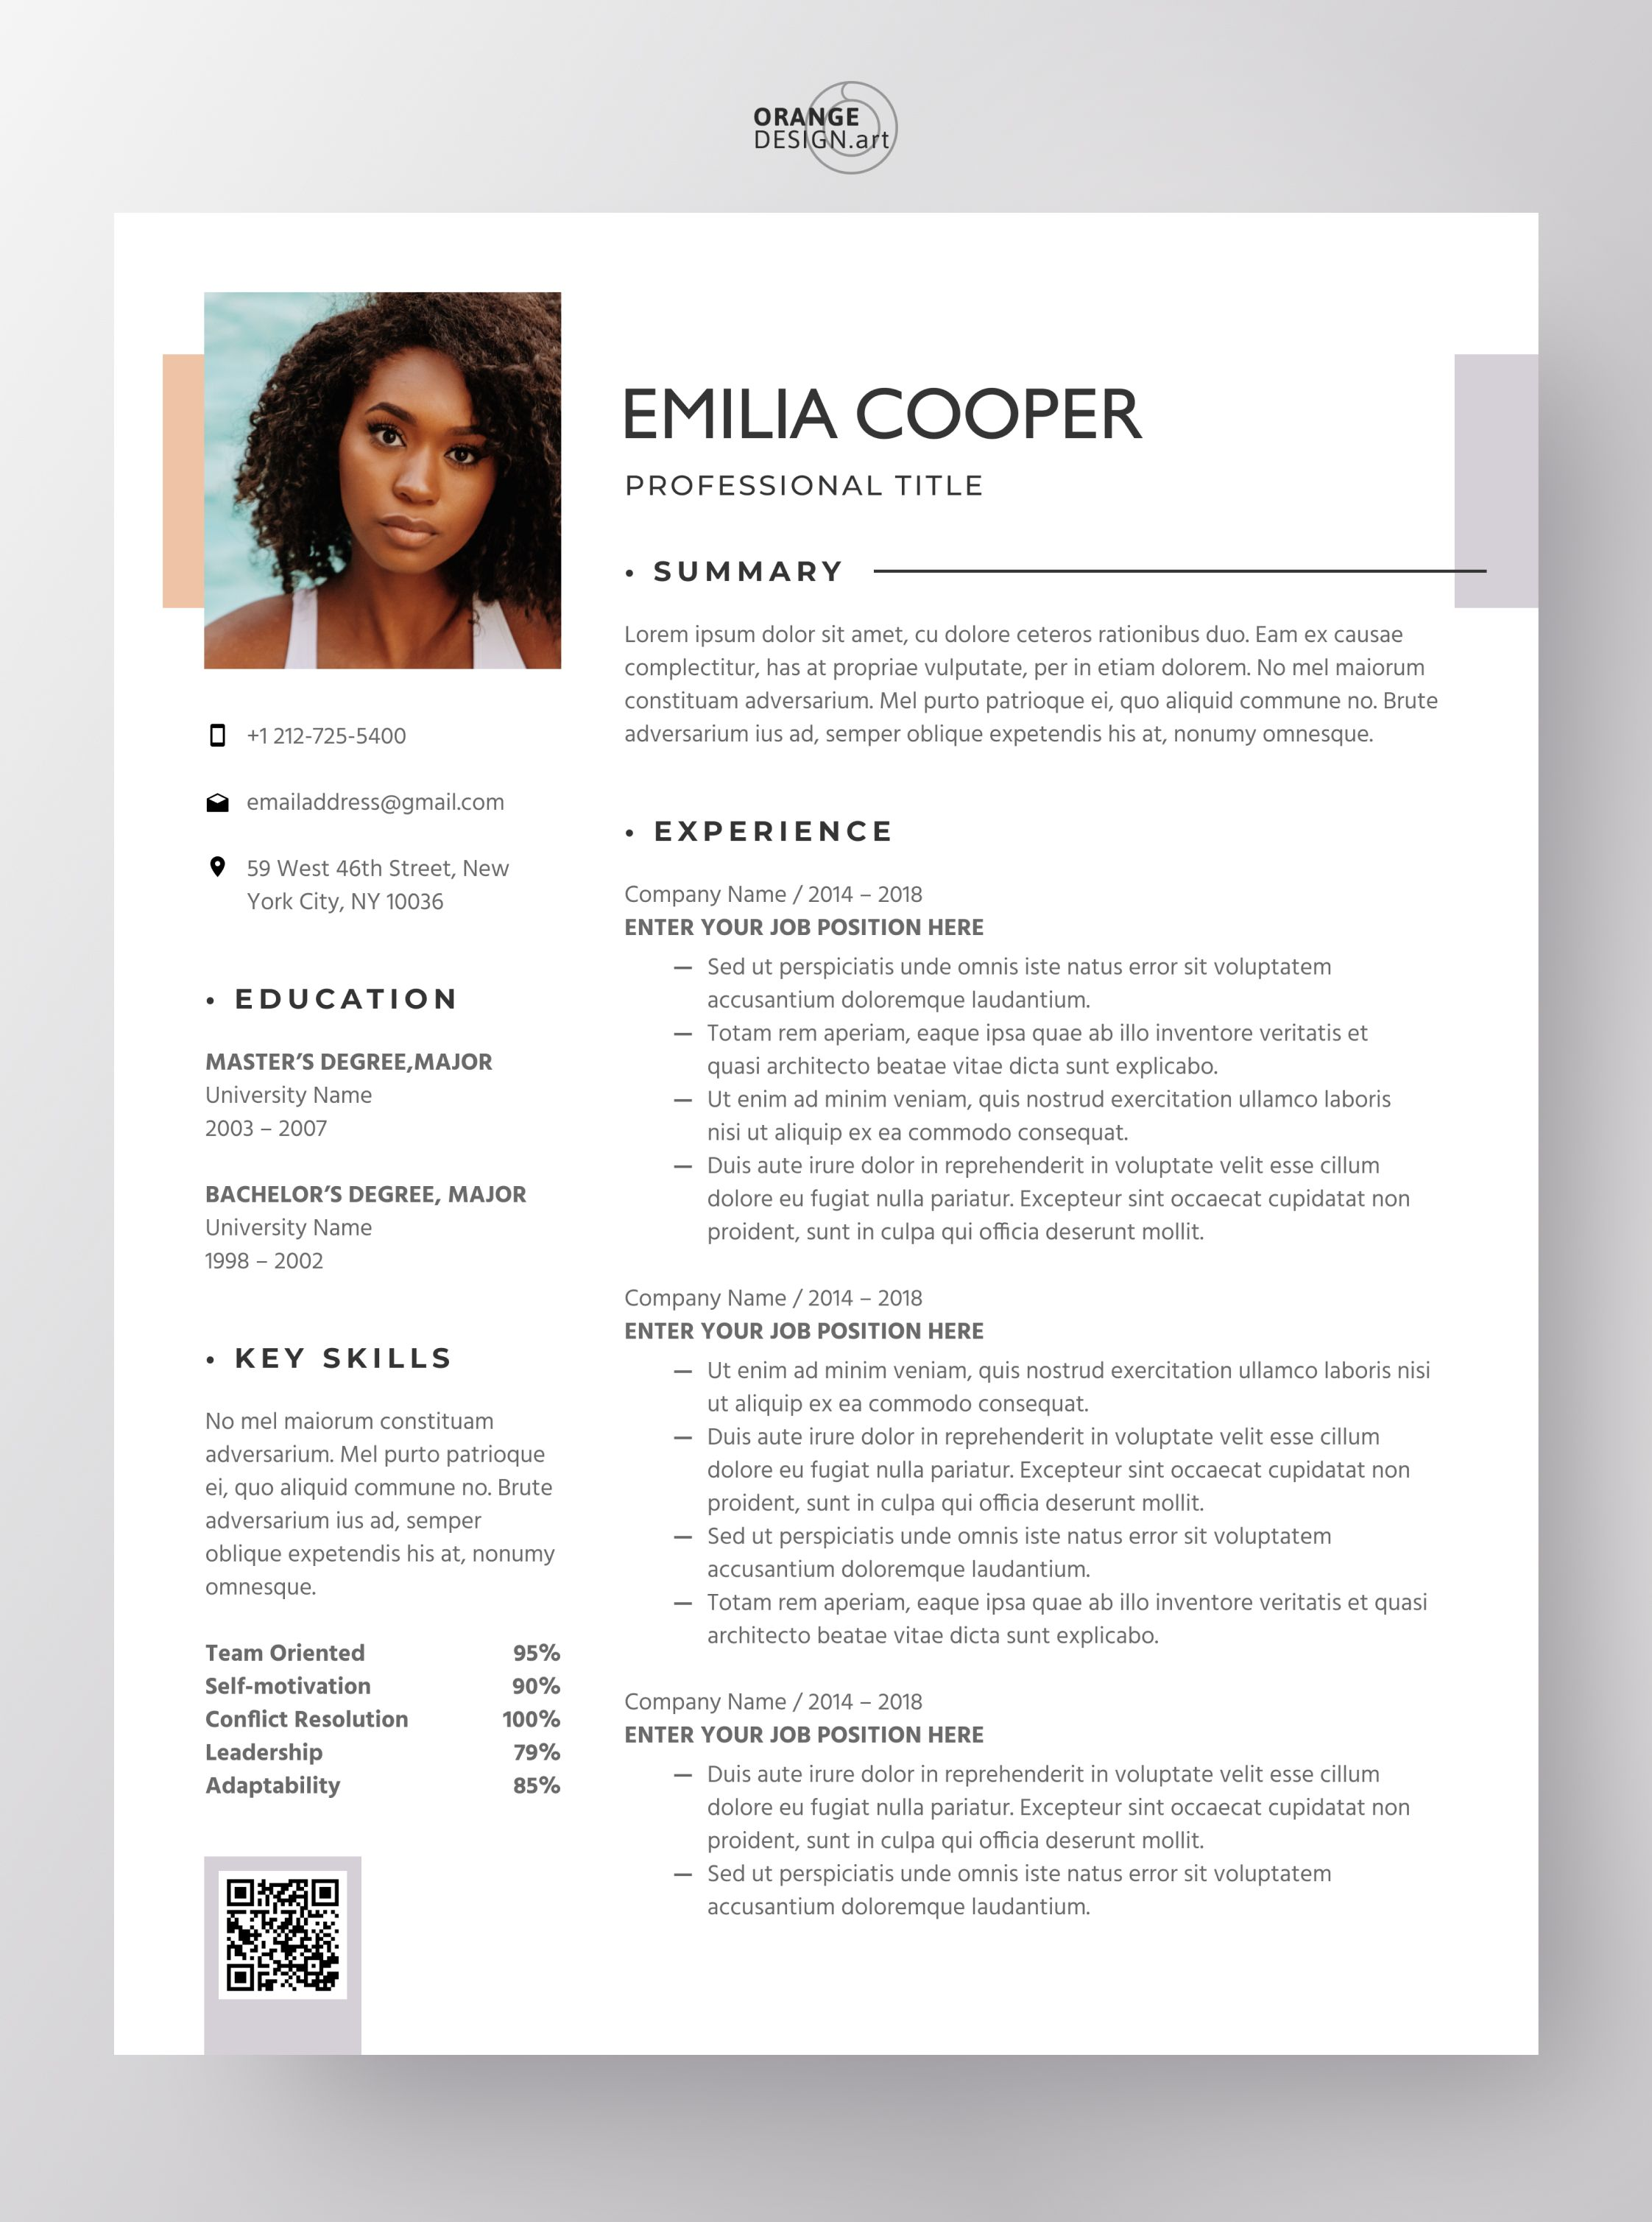 Resume Template Word 2021 Professional Cv Template With Photo Personal Cv Design Modern Resume Template Curriculum Vitae Cooper In 2021 Resume Template Word Cv Template Professional Modern Resume Template